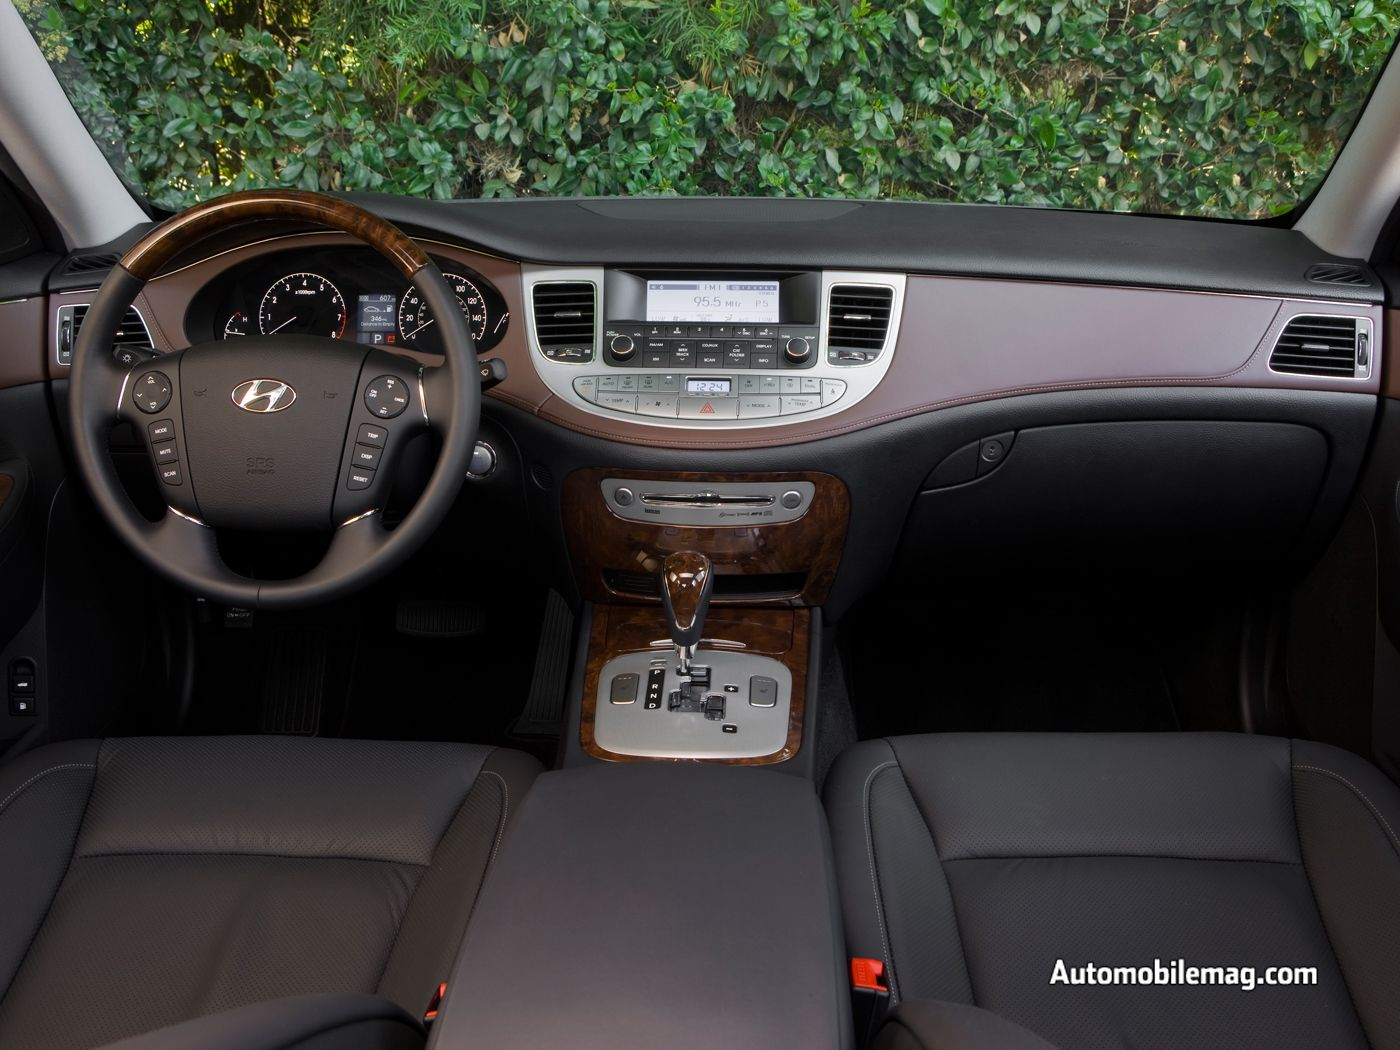 2009 hyundai genesis pictures information and specs auto. Black Bedroom Furniture Sets. Home Design Ideas